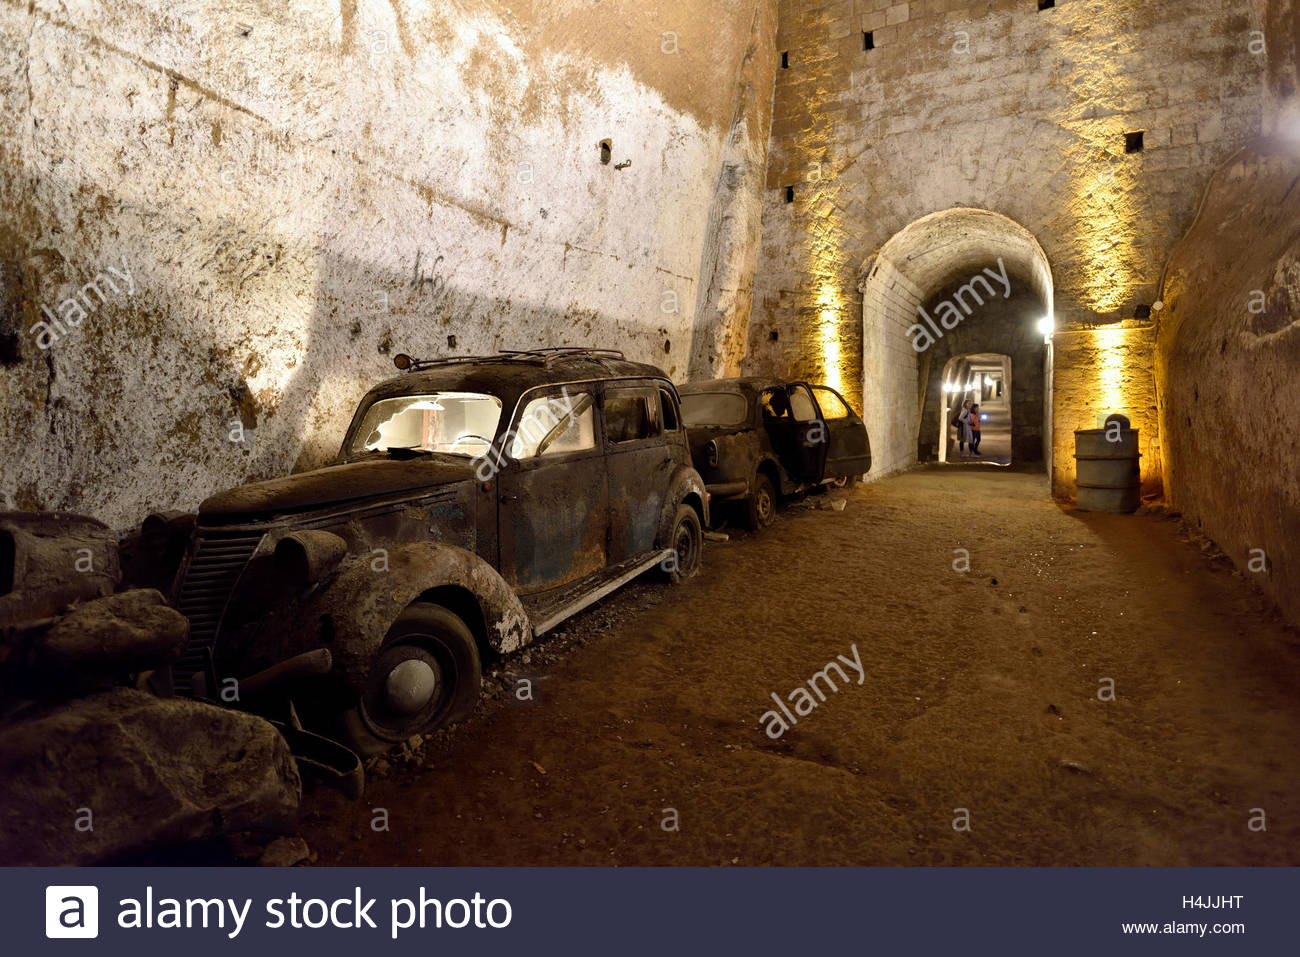 Abandoned tunnel with retro cars